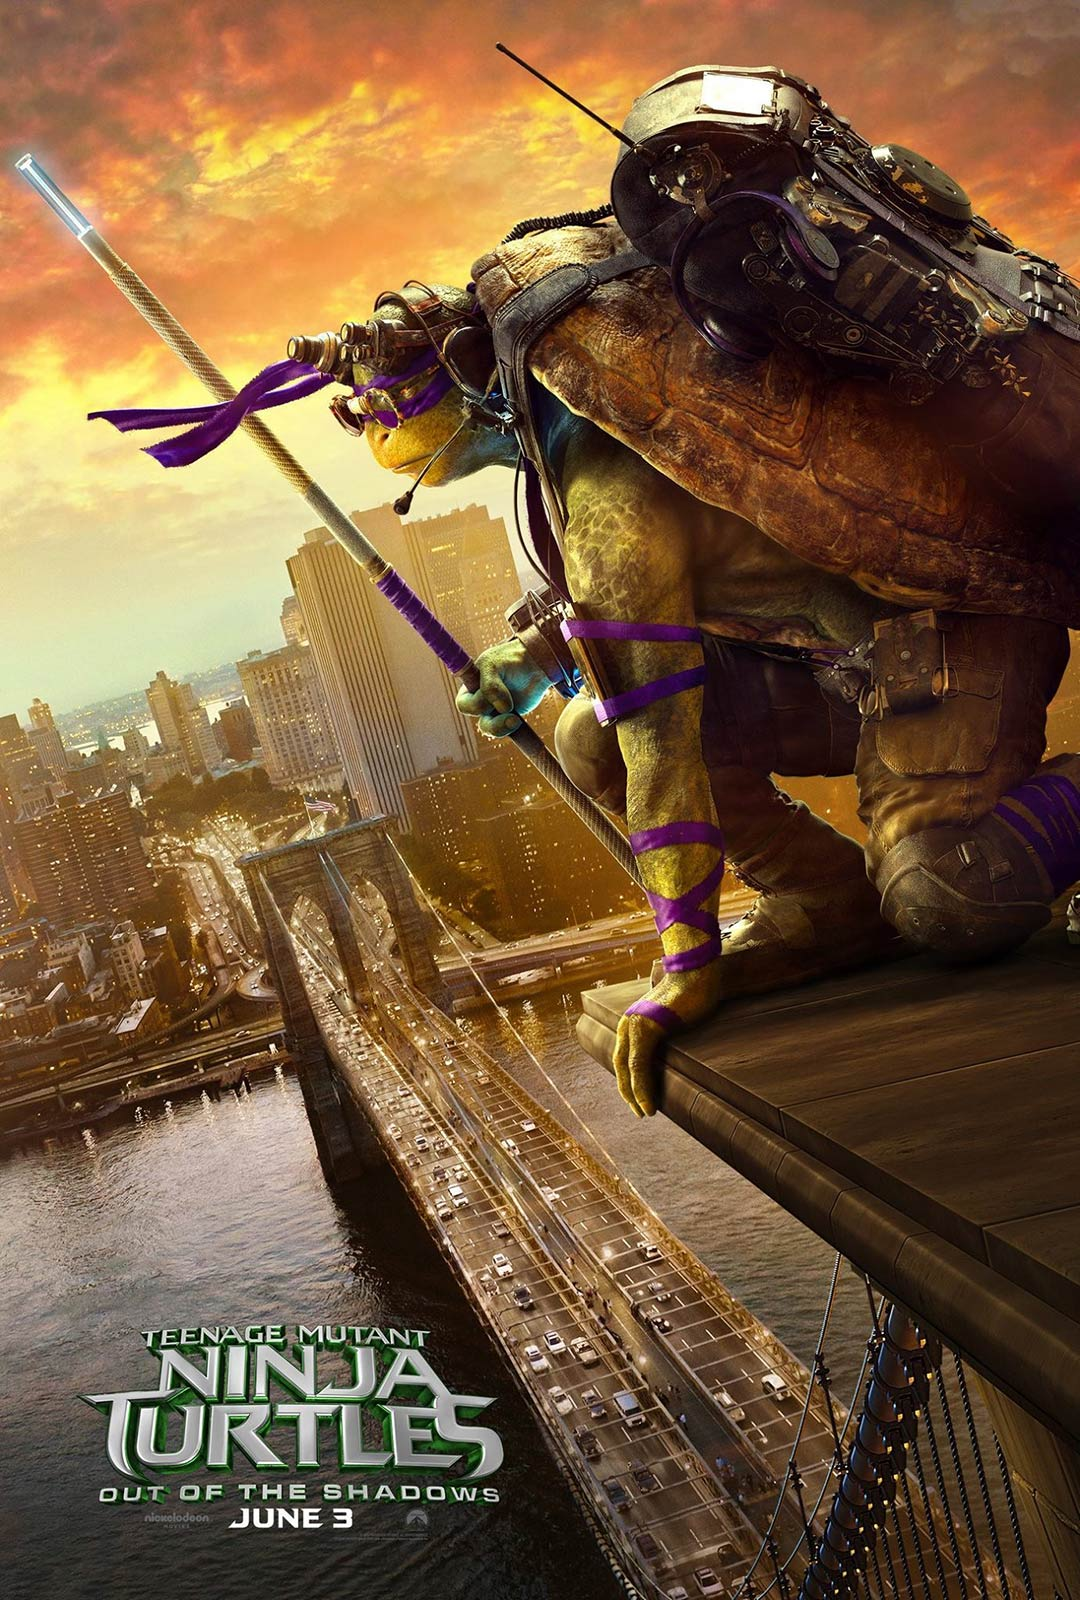 Teenage Mutant Ninja Turtles: Out of the Shadows Poster #6